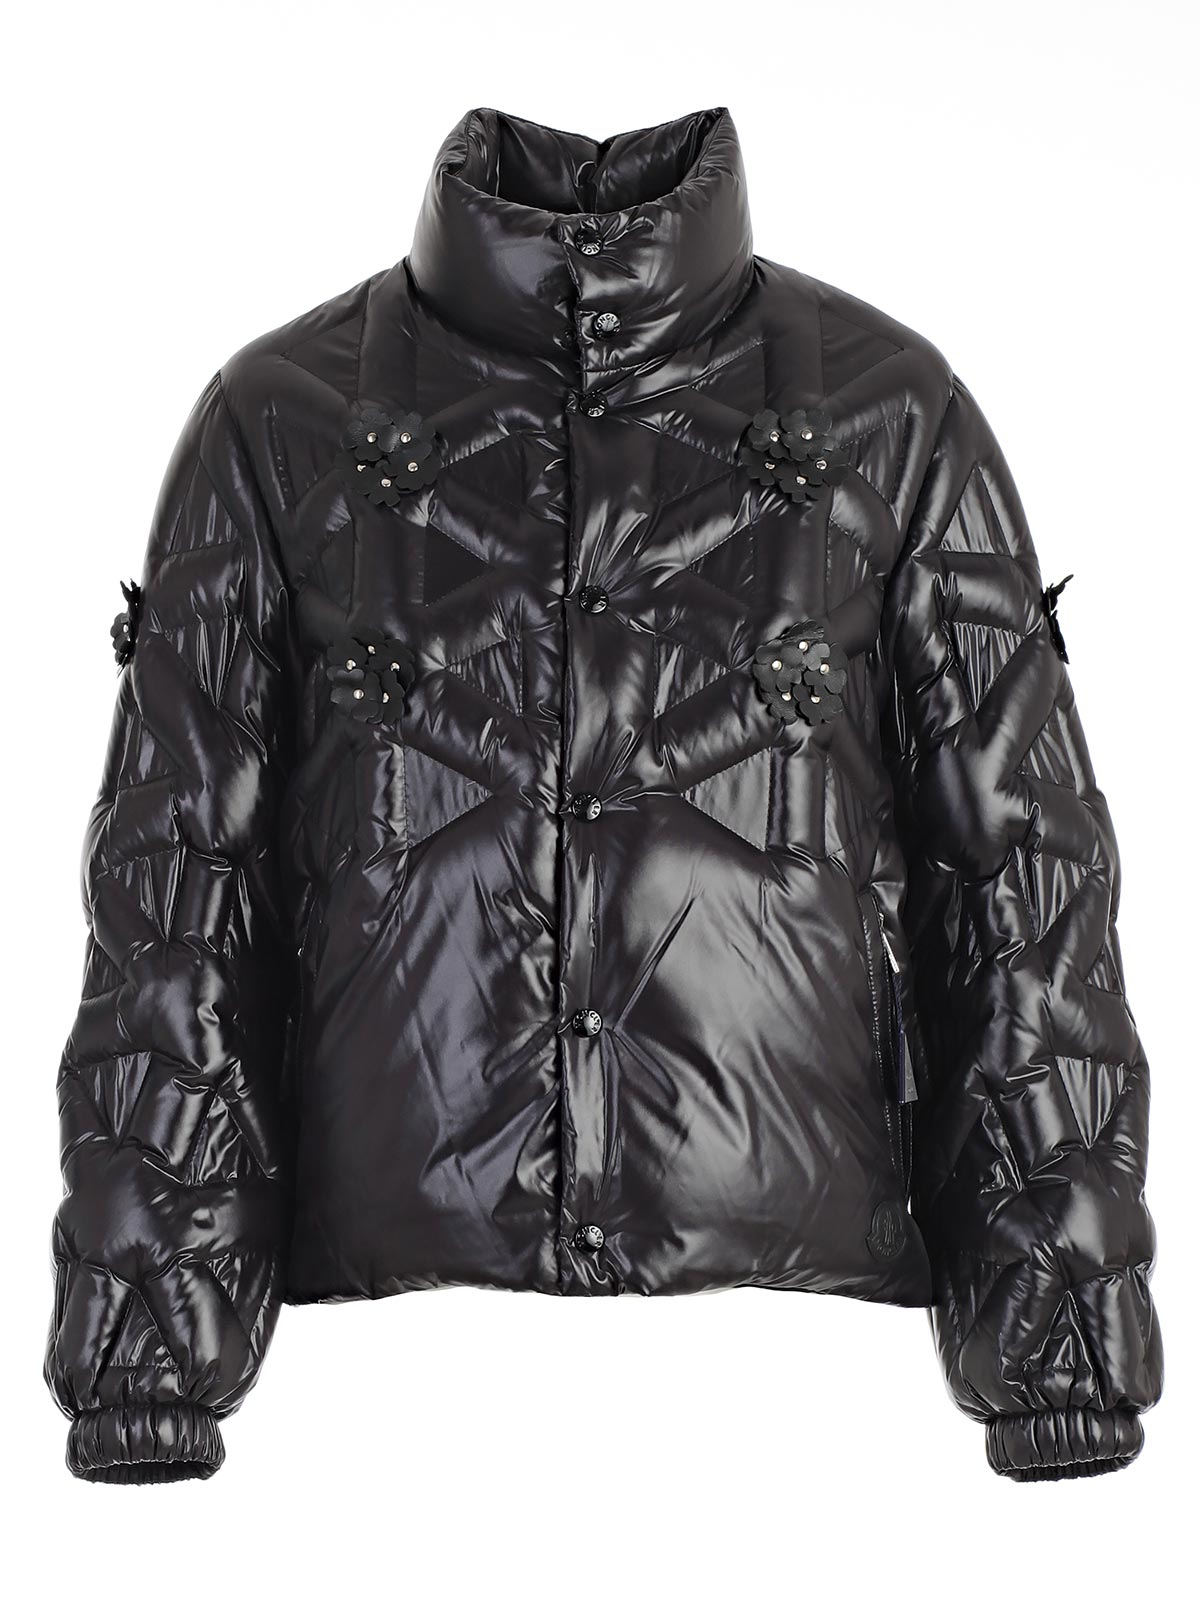 Picture of Moncler Genius Jacket